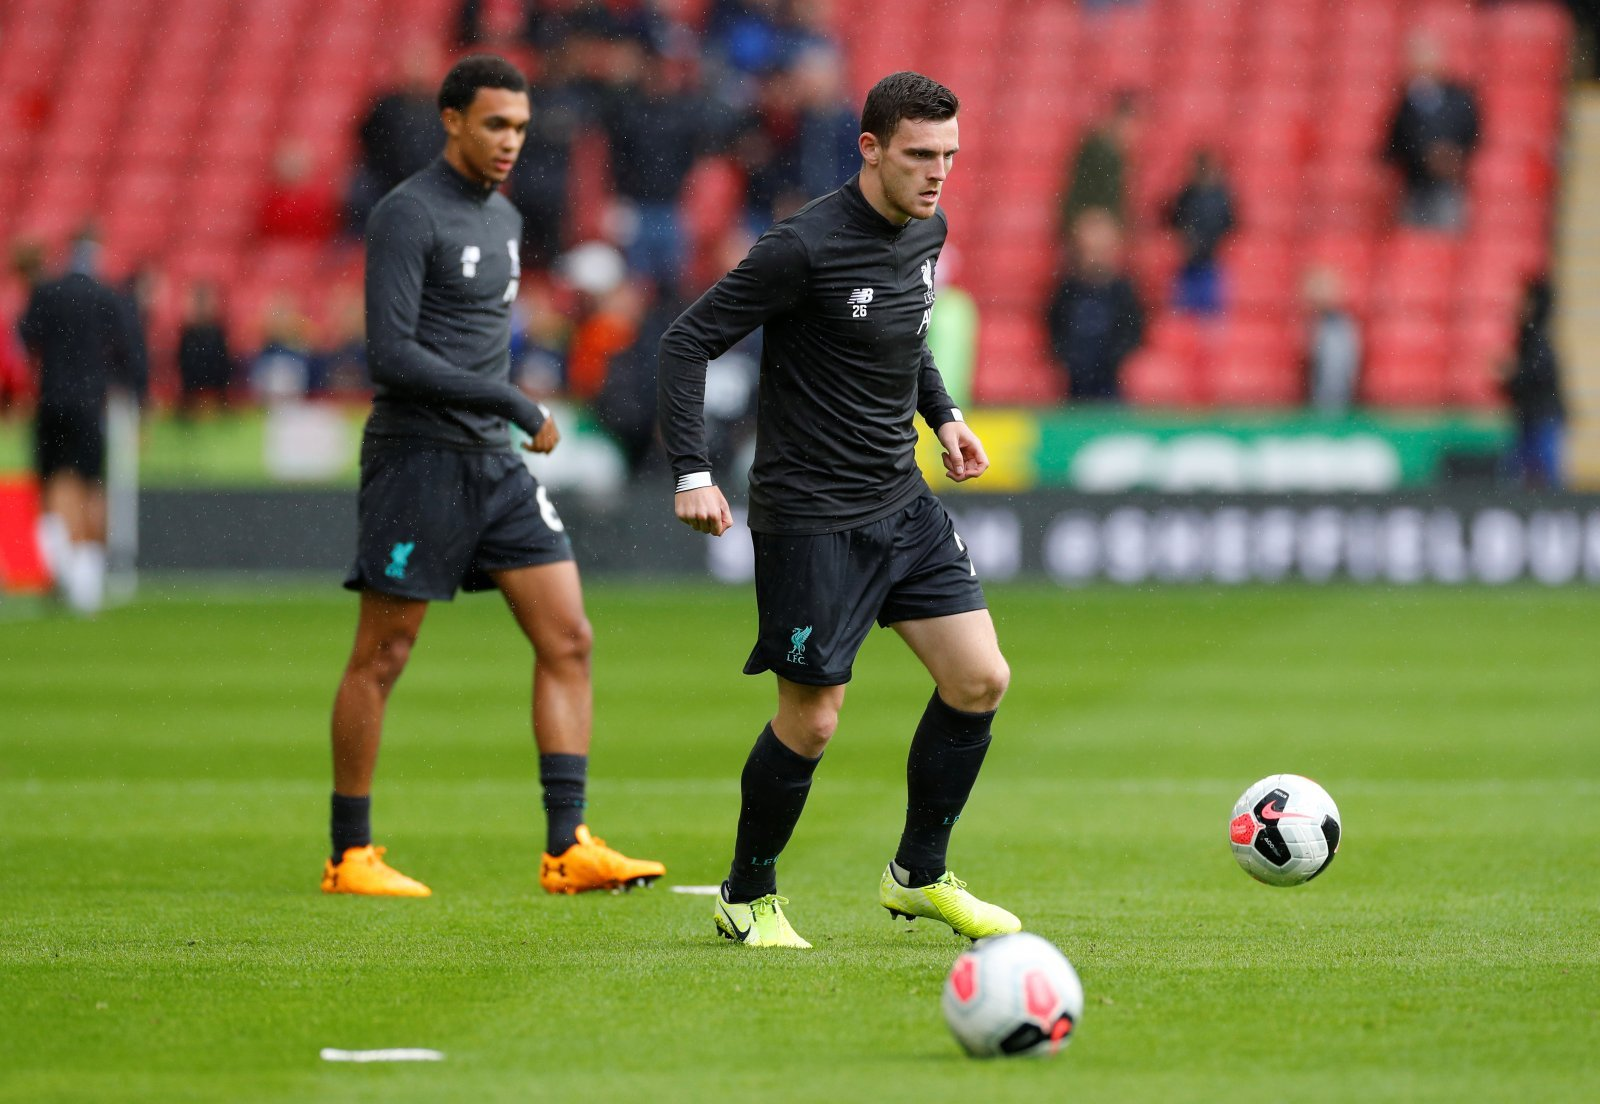 Liverpool: Fans revel in competitiveness between Trent Alexander-Arnold and Andy Robertson